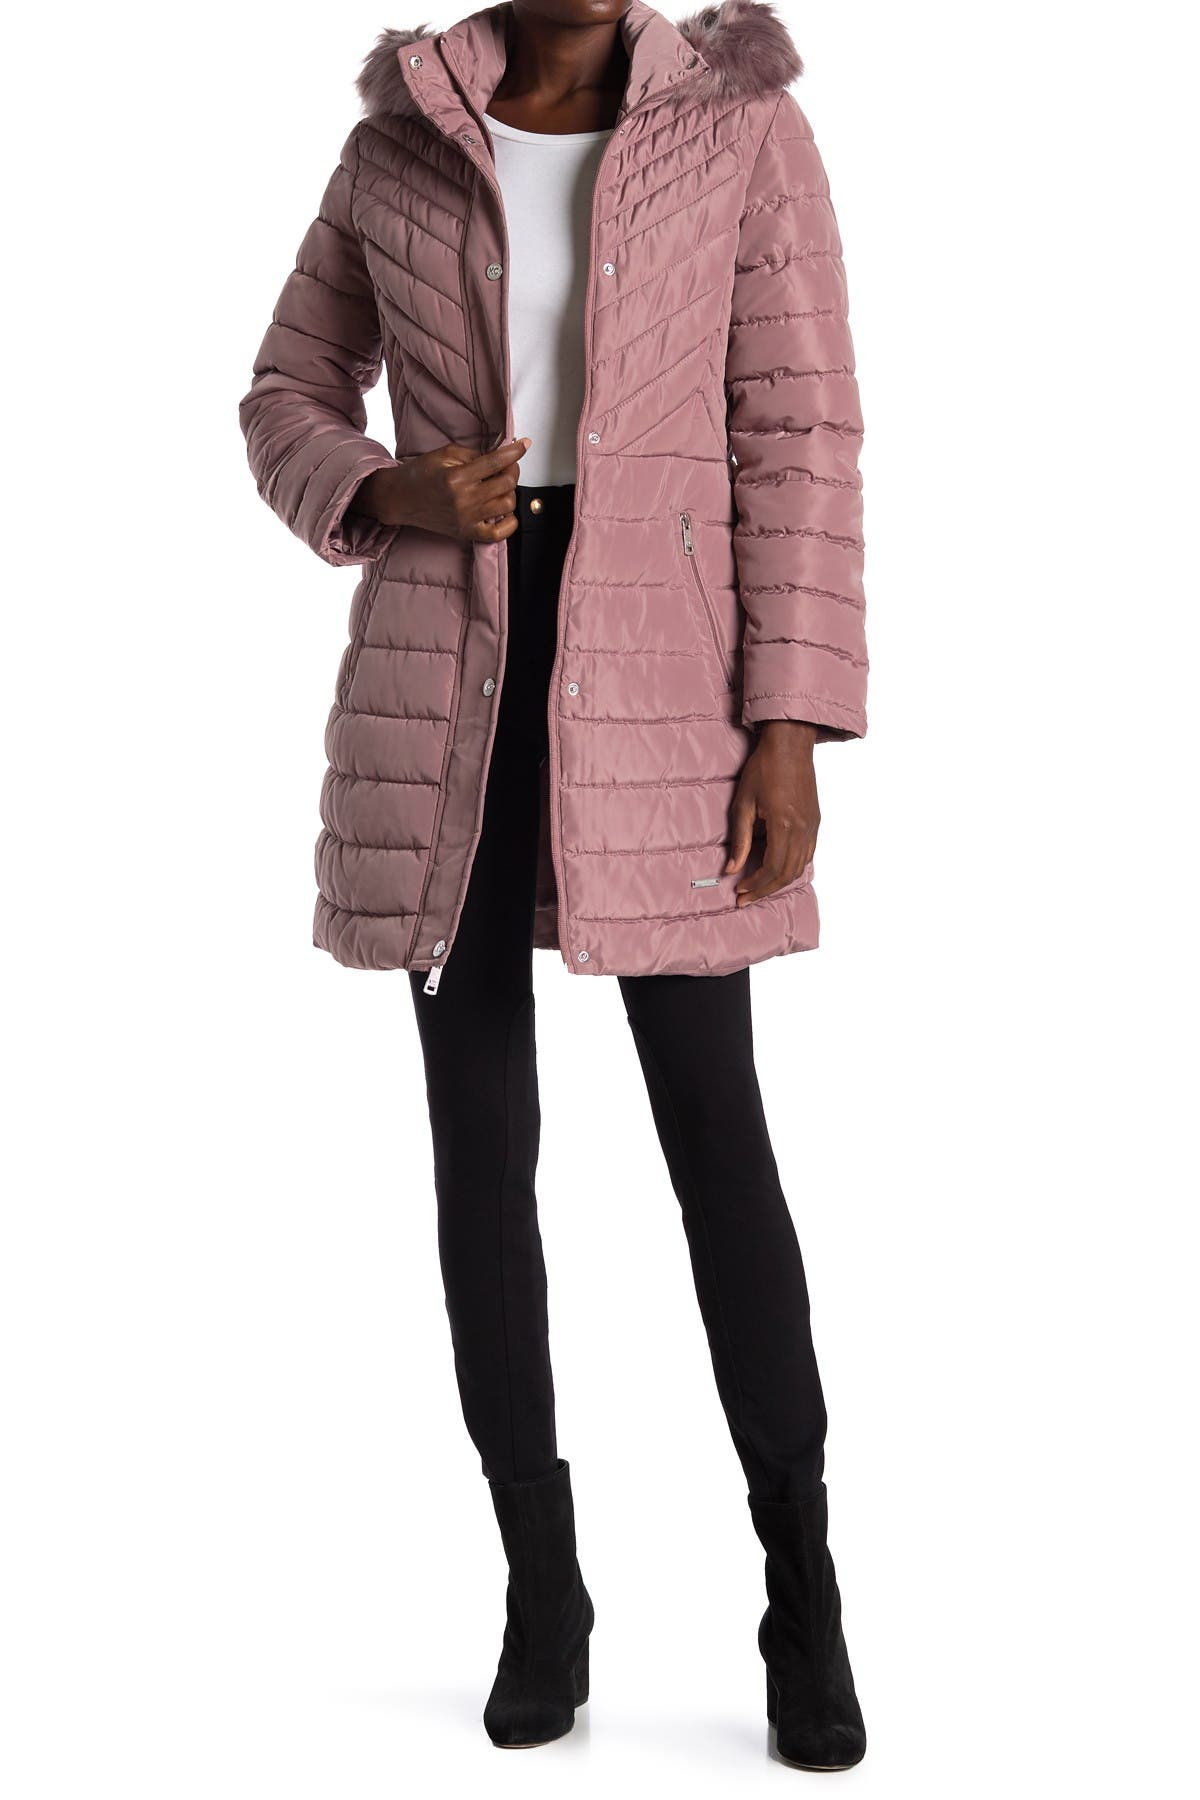 Image of Kenneth Cole New York Faux Fur Trimmed Removable Hooded Satin Quilted Puffer Jacket